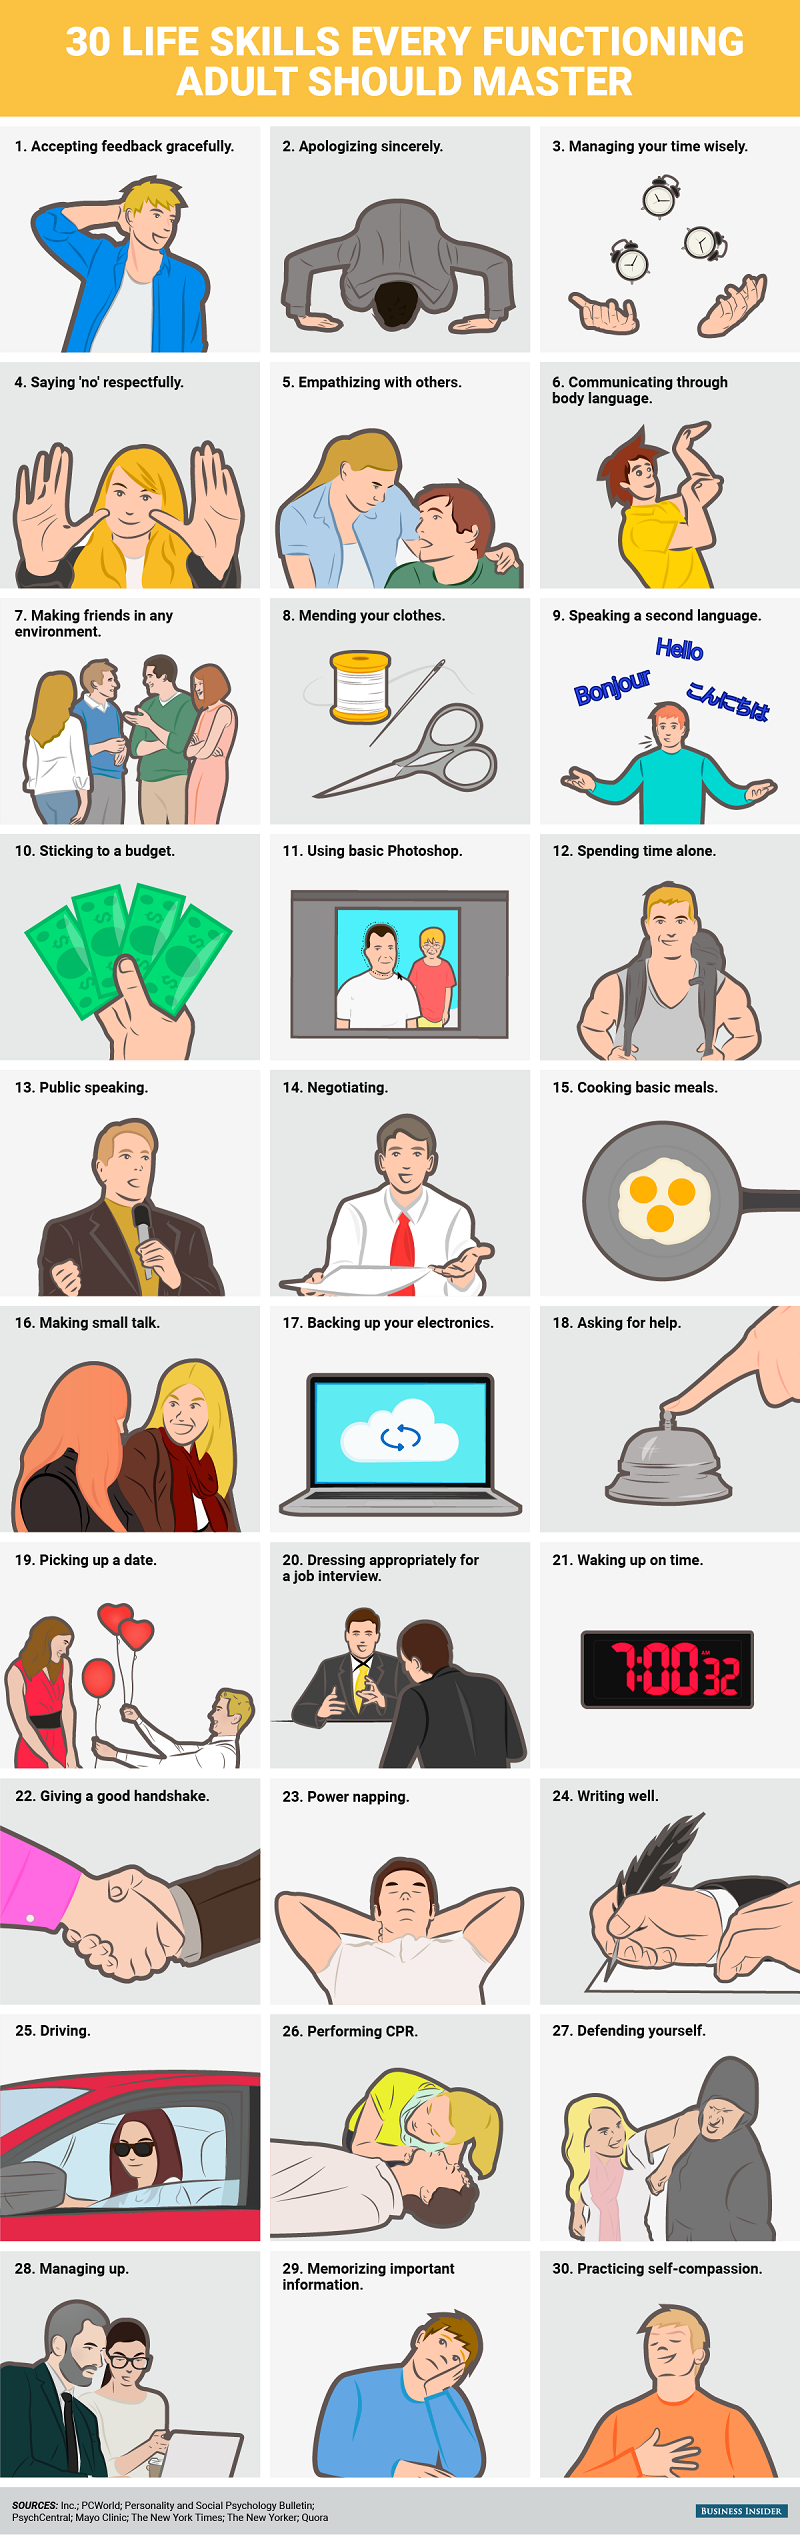 30 Life Skills Every Functioning Adult Should Master